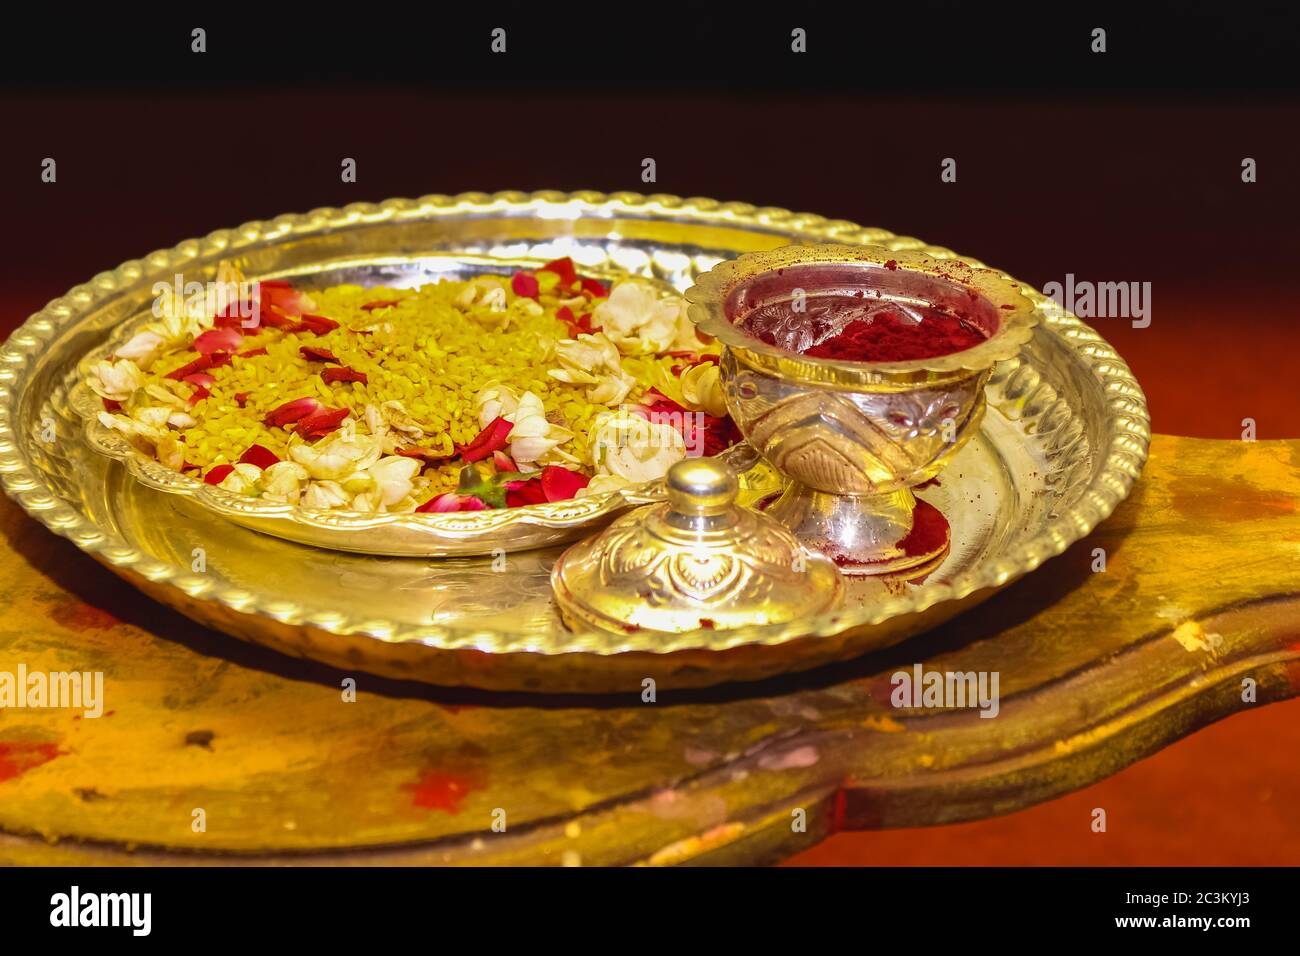 Silver Plates Closeup Of A Traditional Silver Plate With Spices And Riceat A South Indian Hindu Wedding In India Stock Photo Alamy